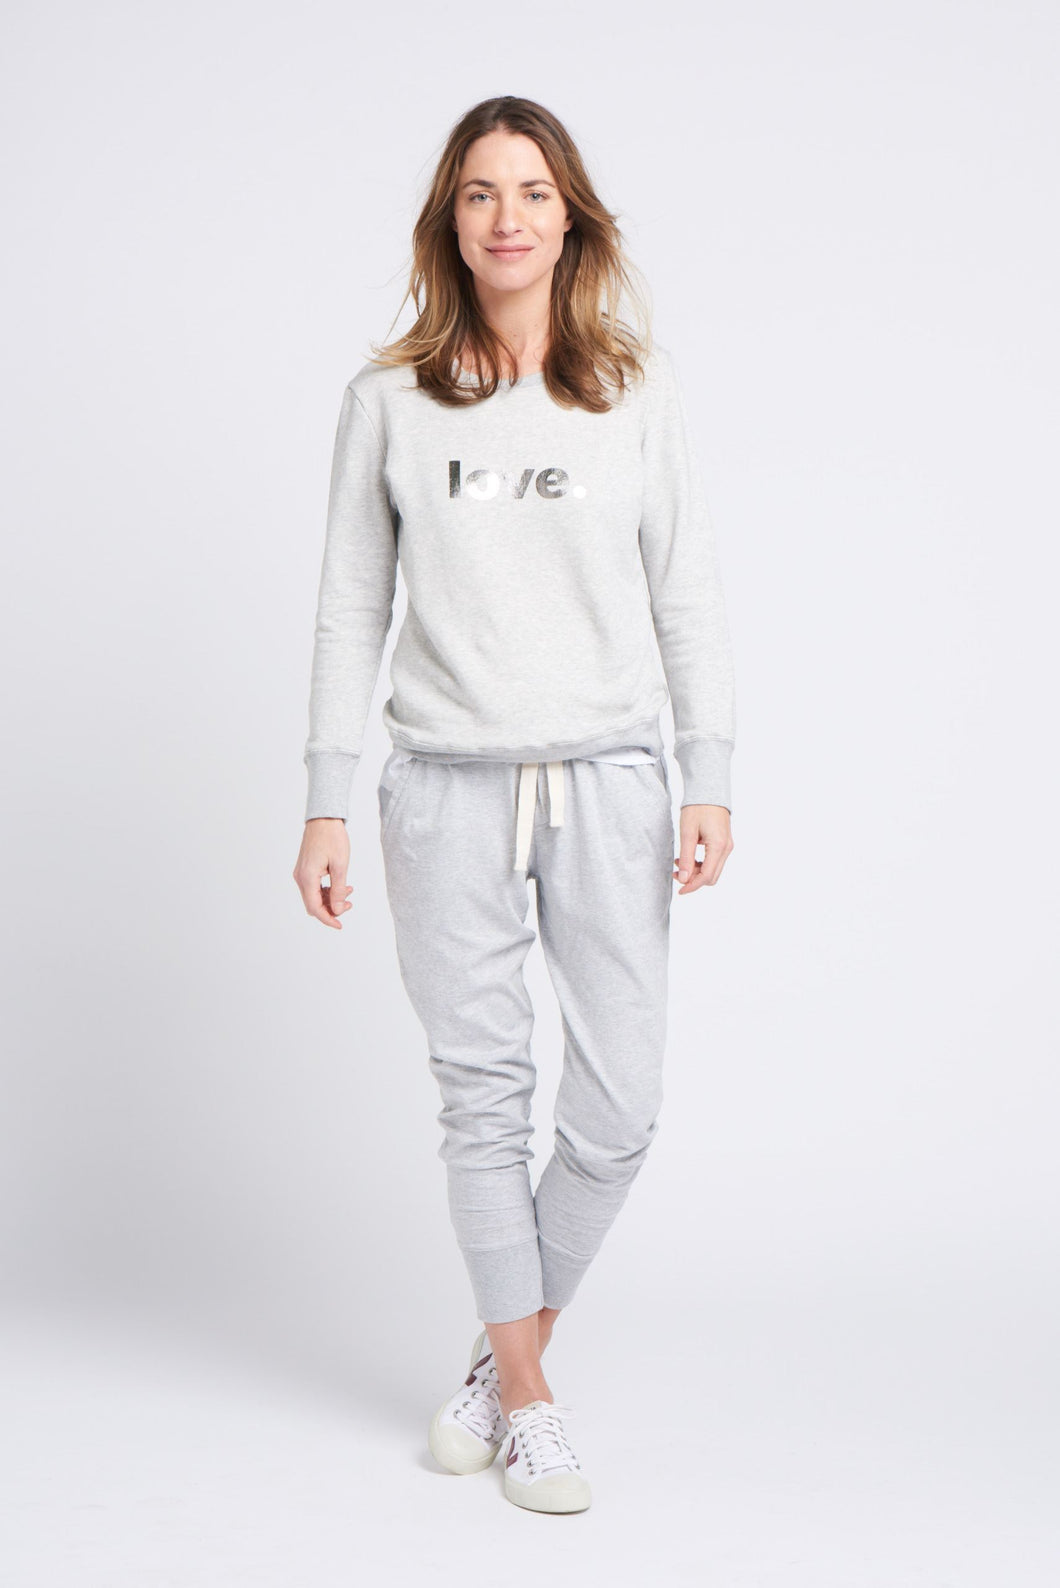 Boyfriend Sweater Grey Love Silver